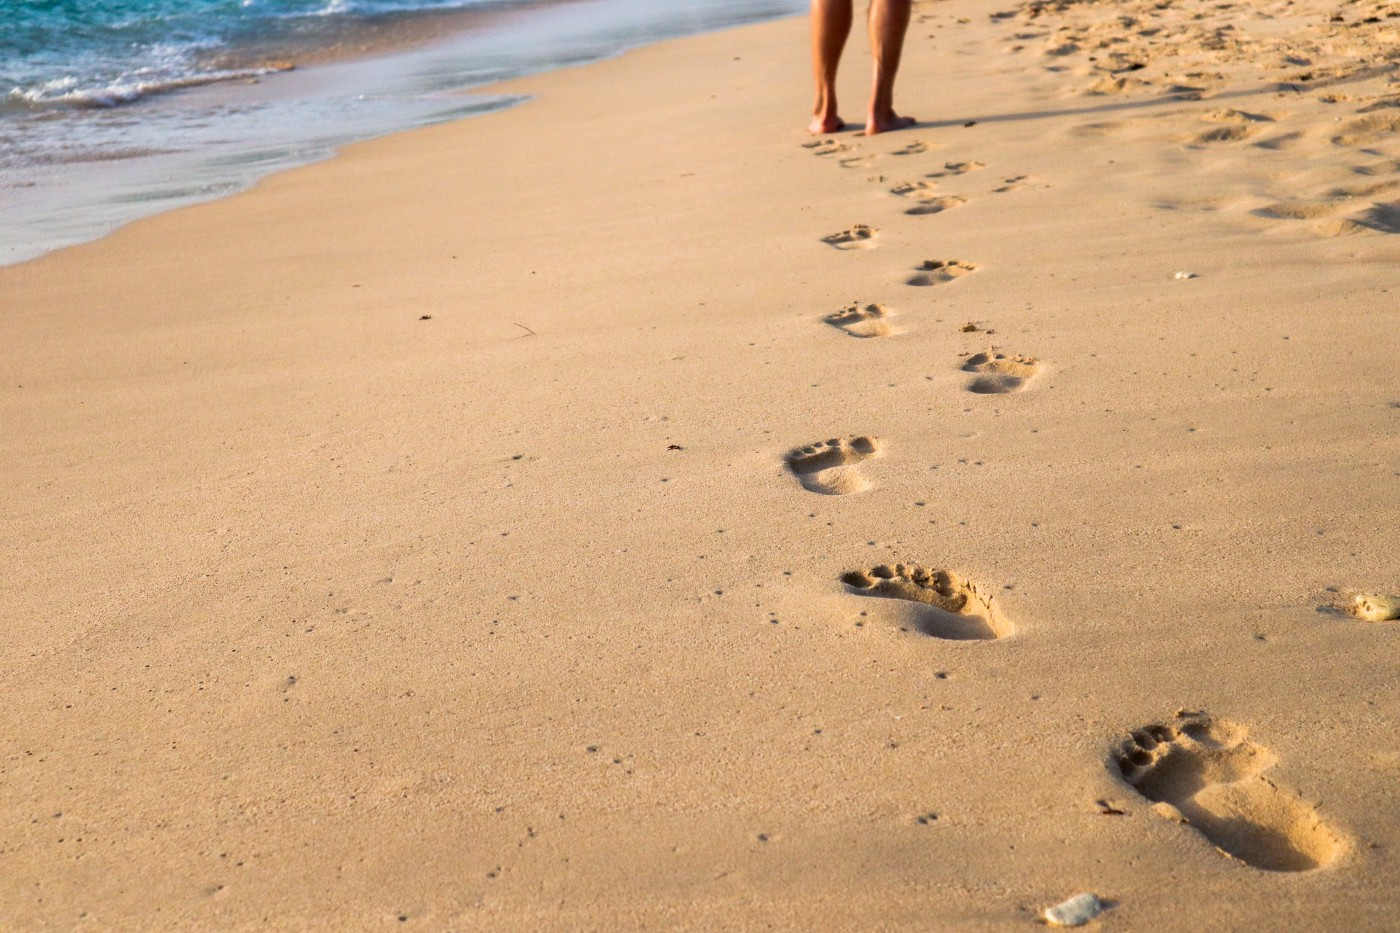 Barefoot footsteps in sand next to water.